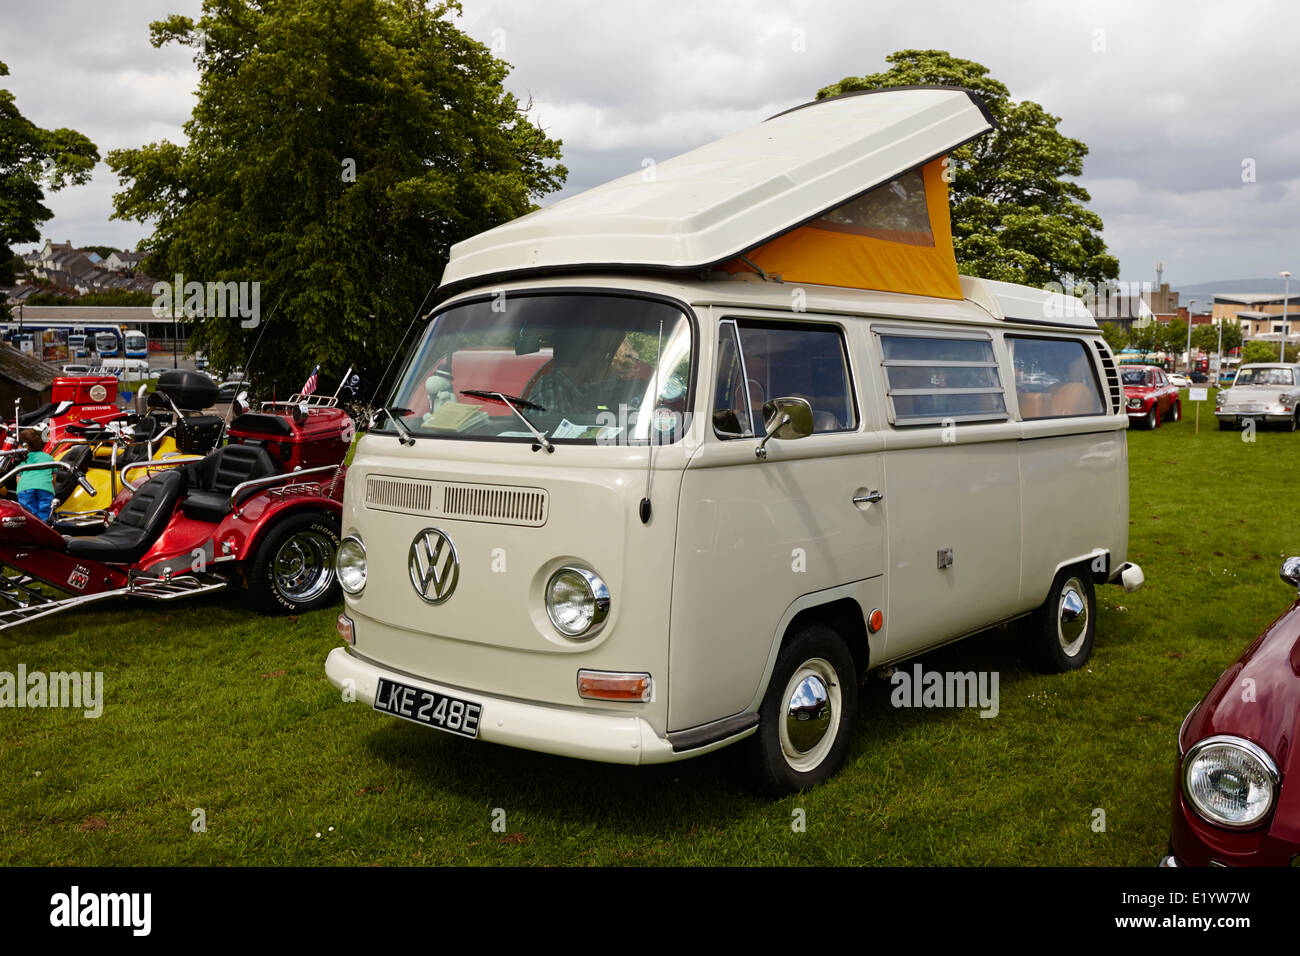 westfalia vw bay window campervan at a classic car show bangor northern ireland - Stock Image